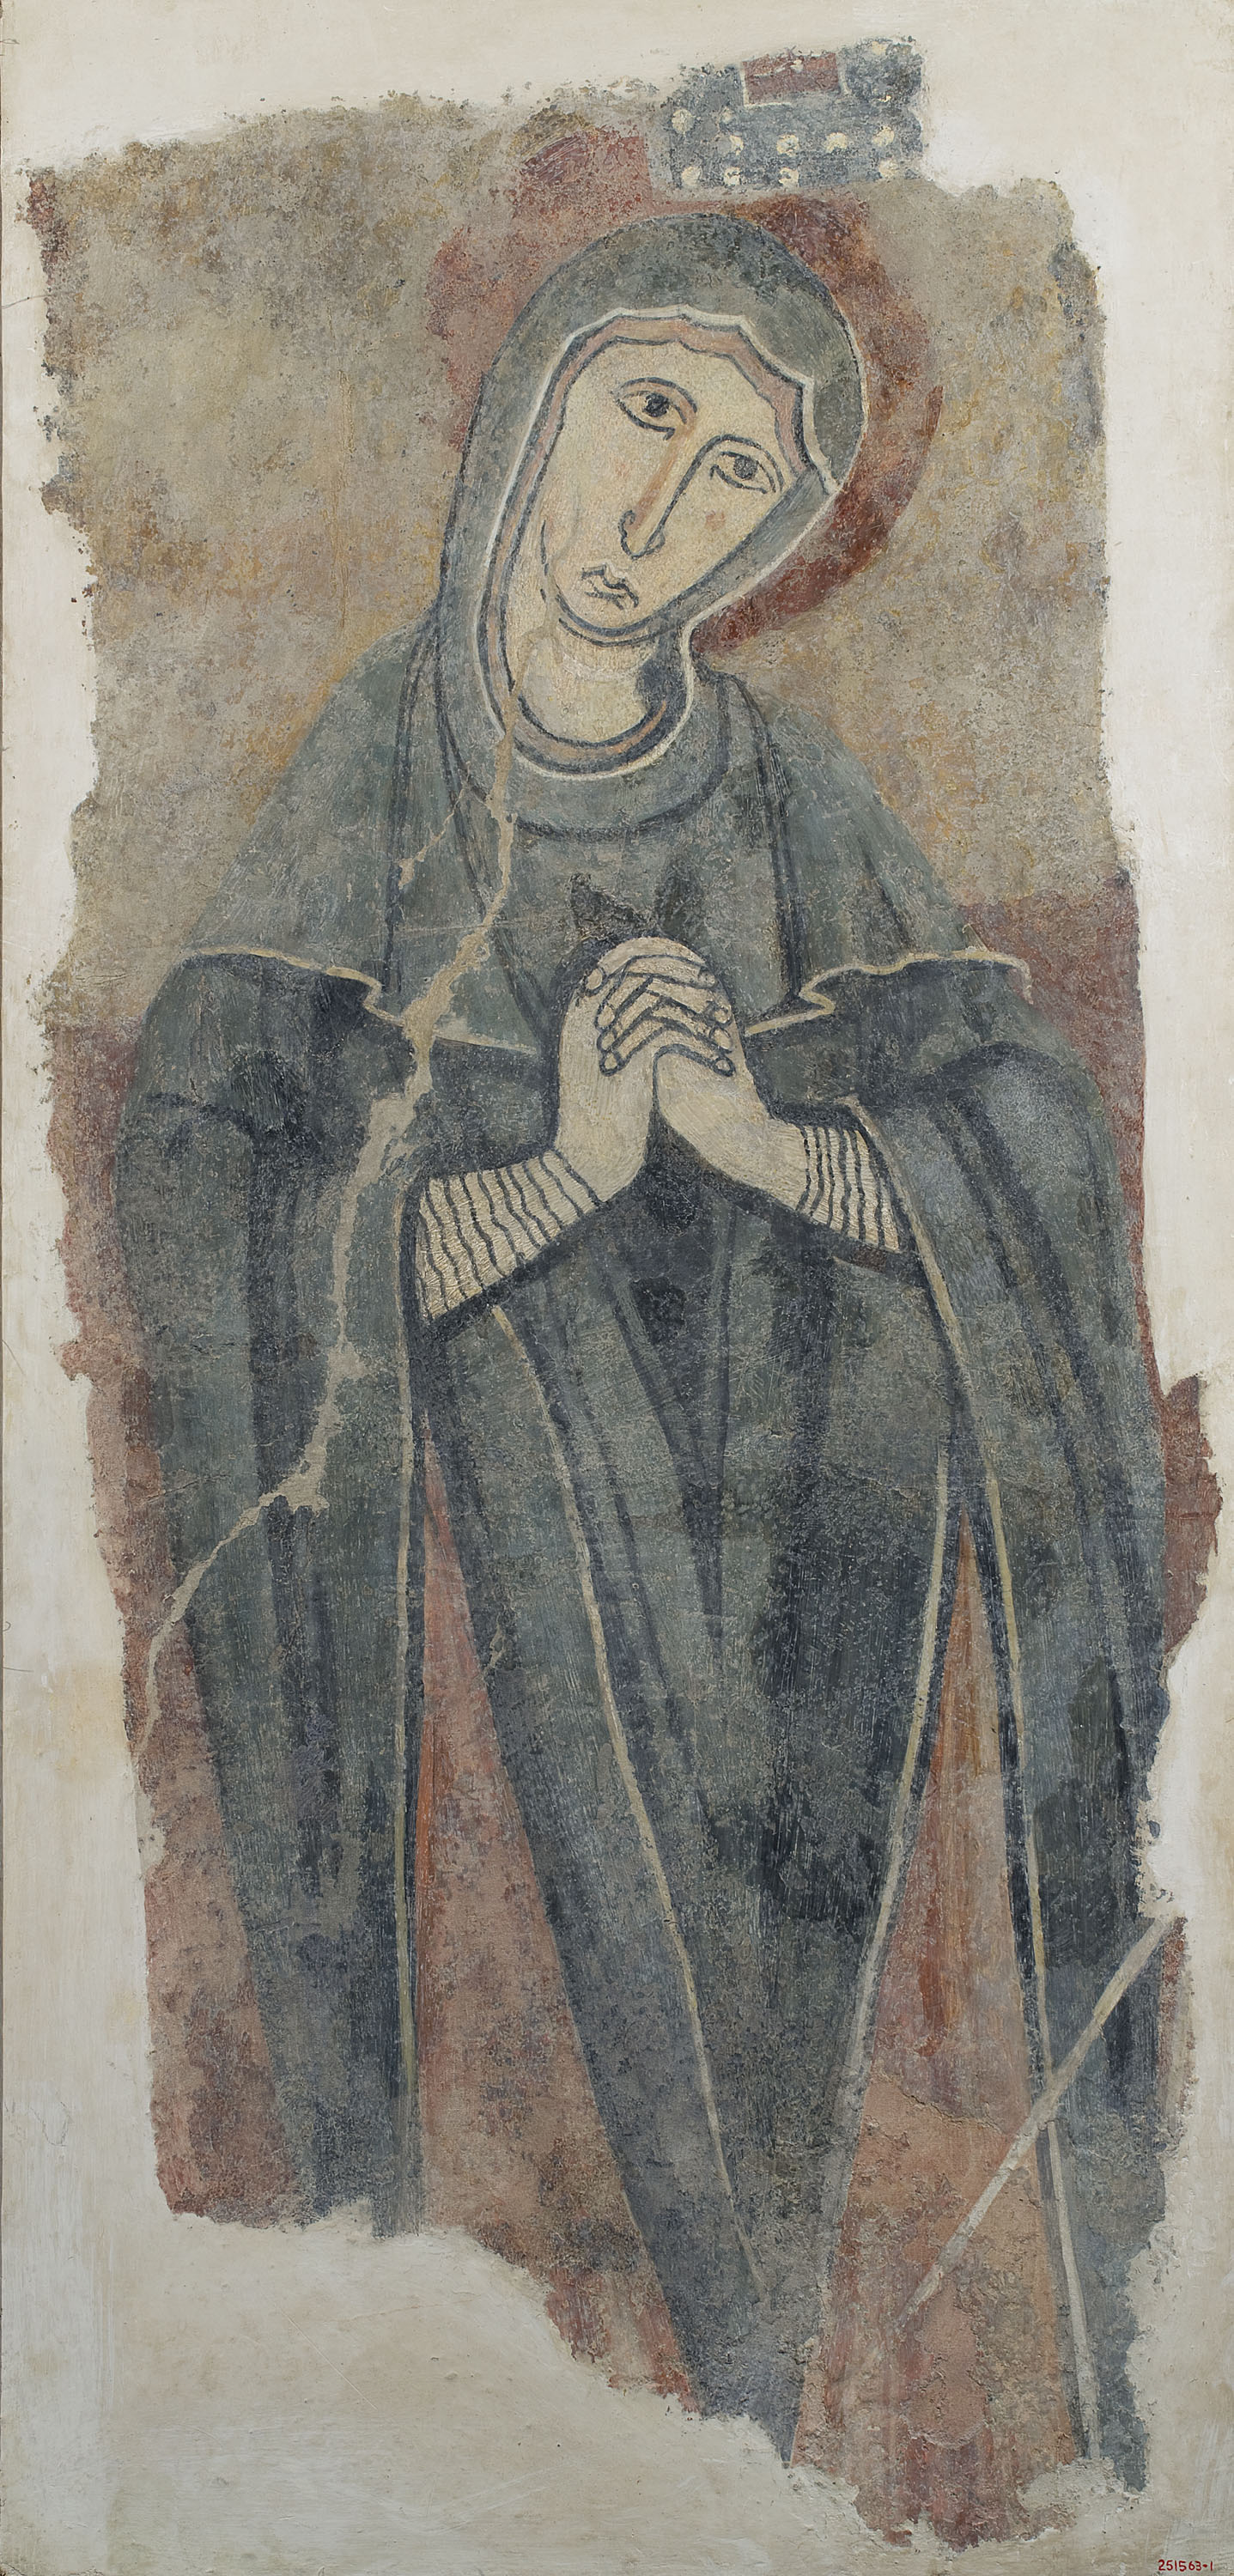 Anónimo. Cataluña - Virgin of the Crucifixion, from Estaon - Mid-12th century